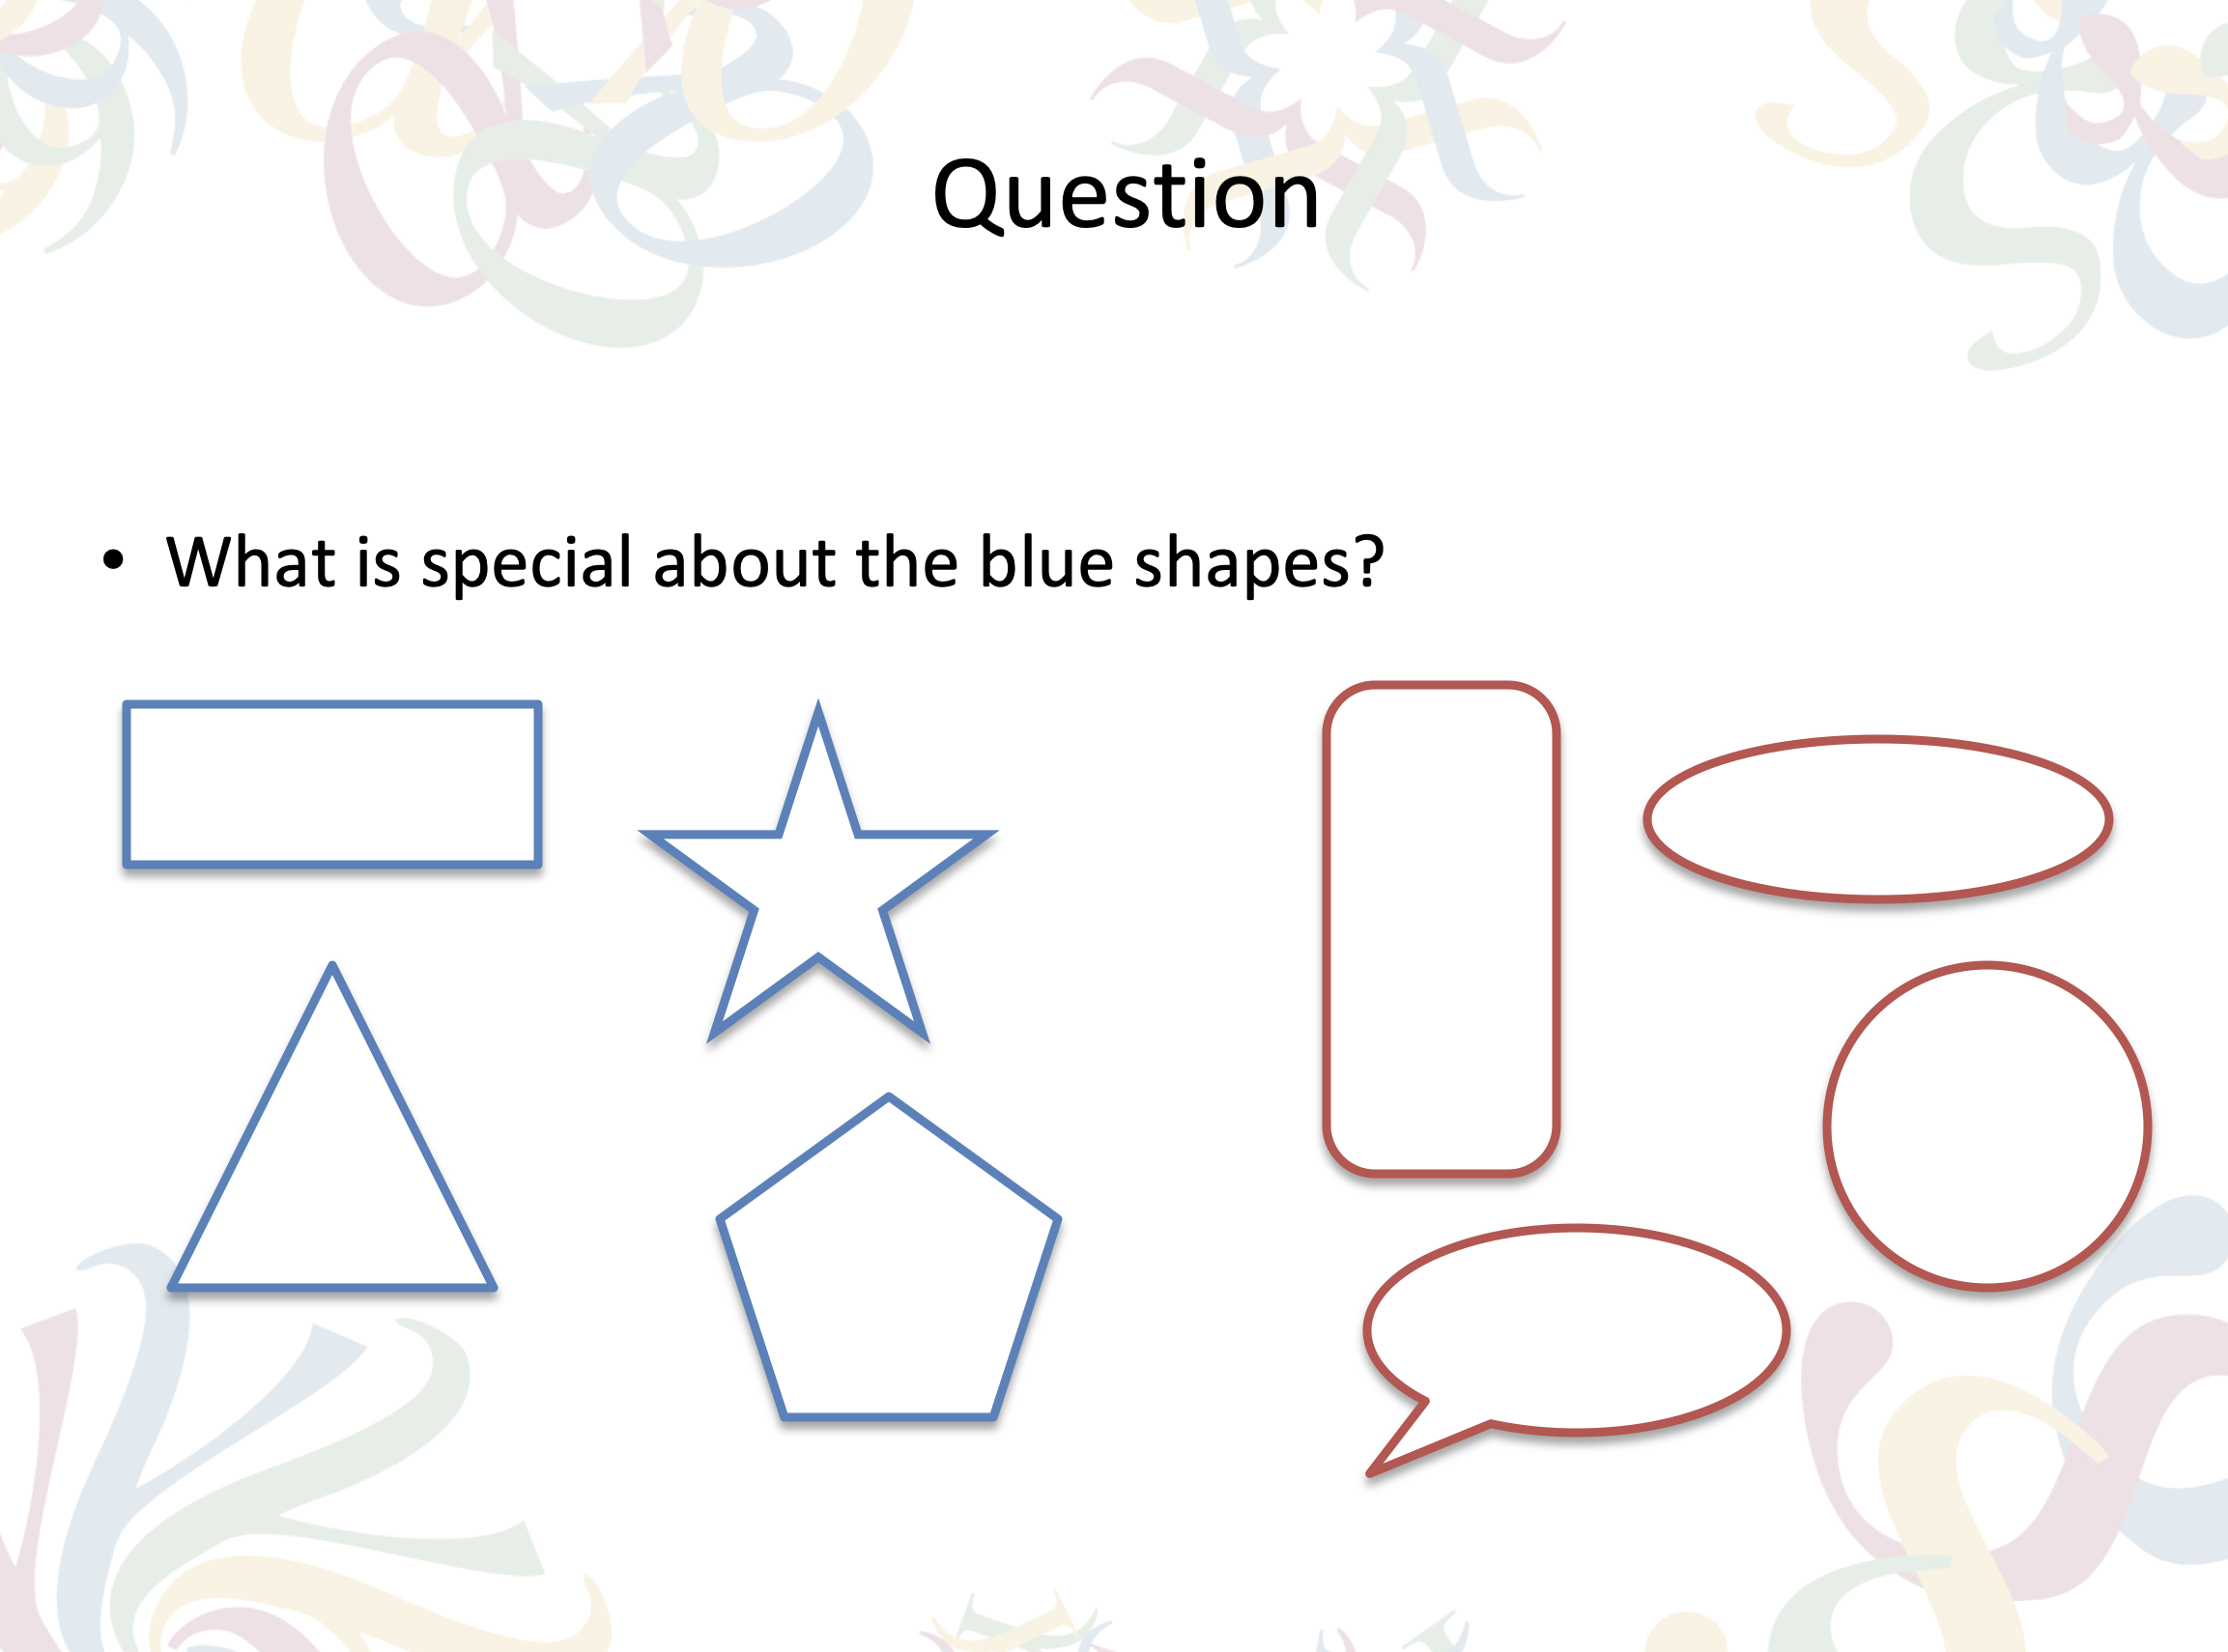 Question: What is special about the blue shapes?